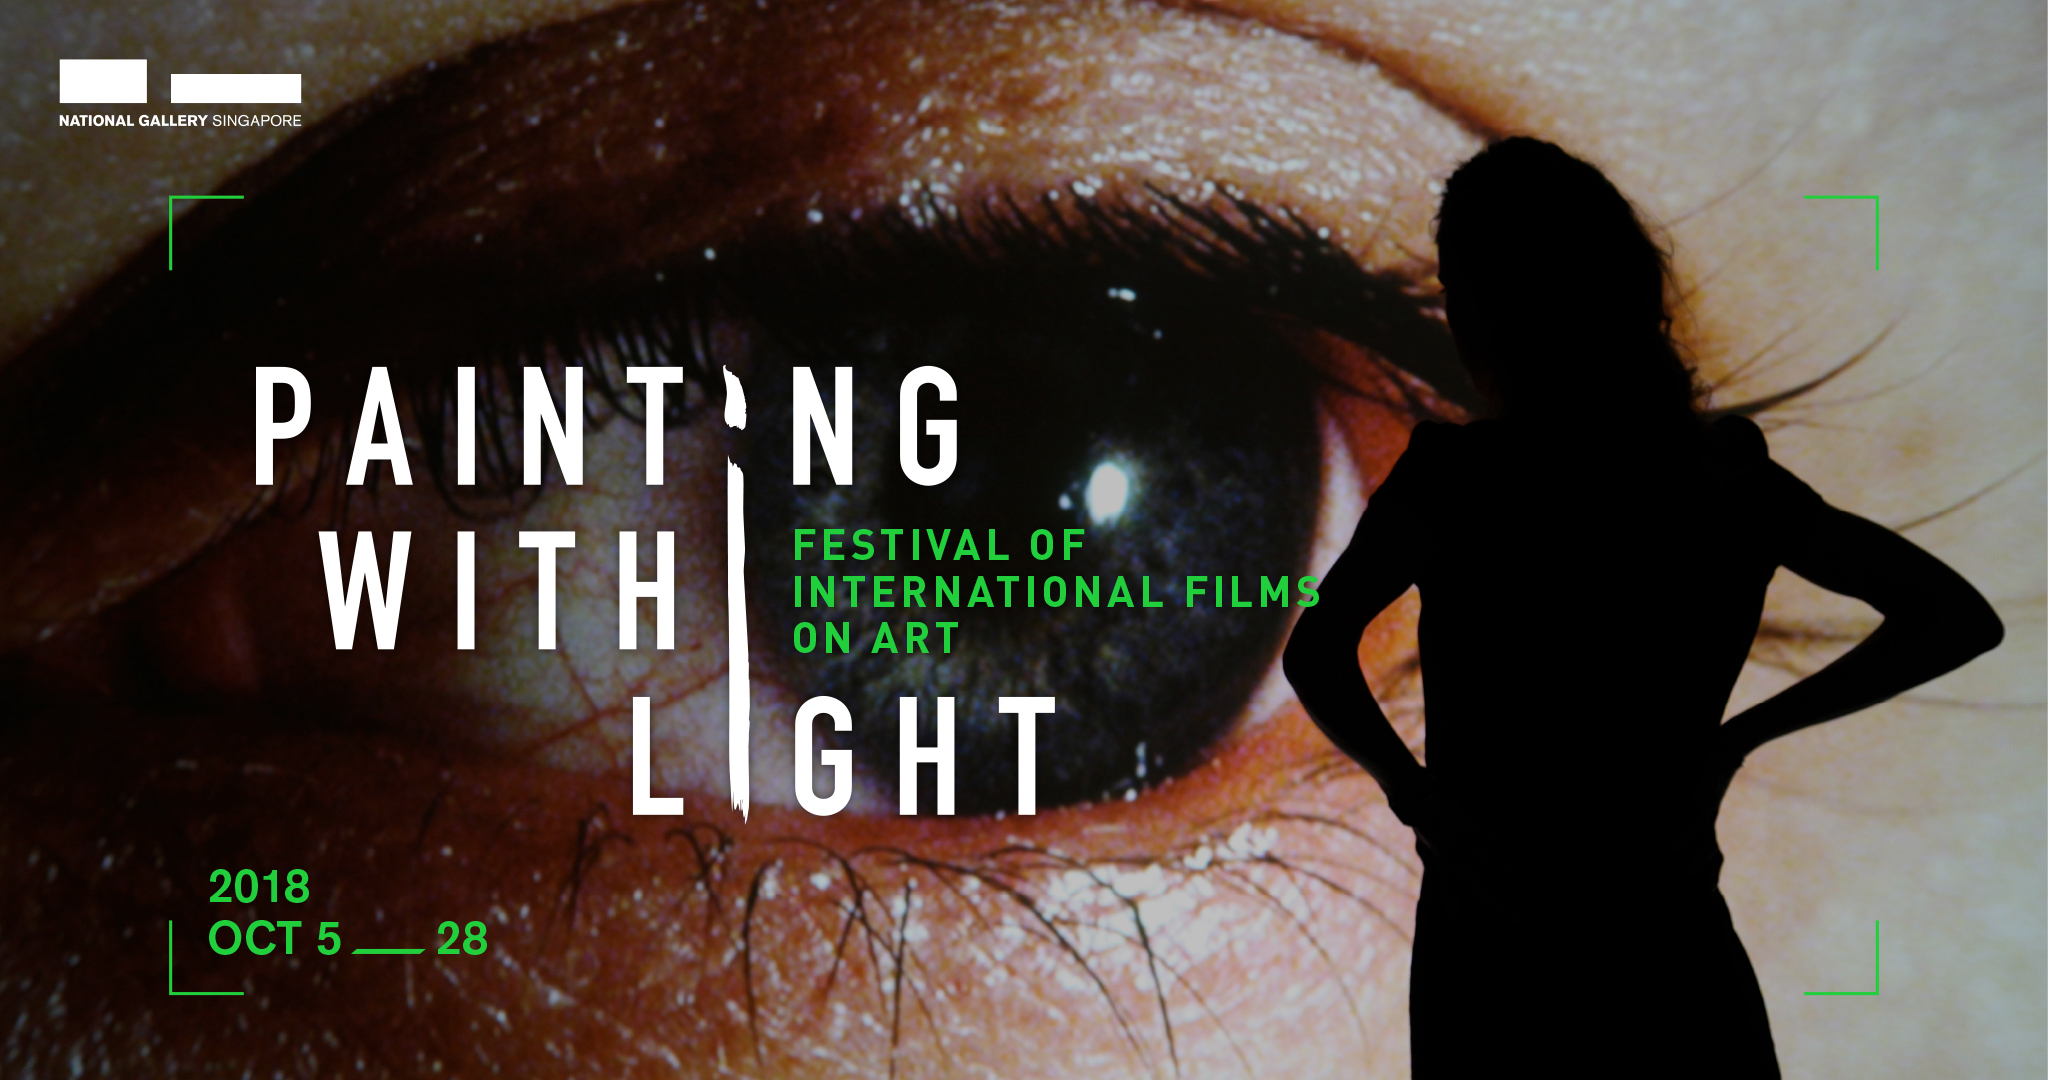 Films to catch at National Gallery Singapore's Painting With Light 2018